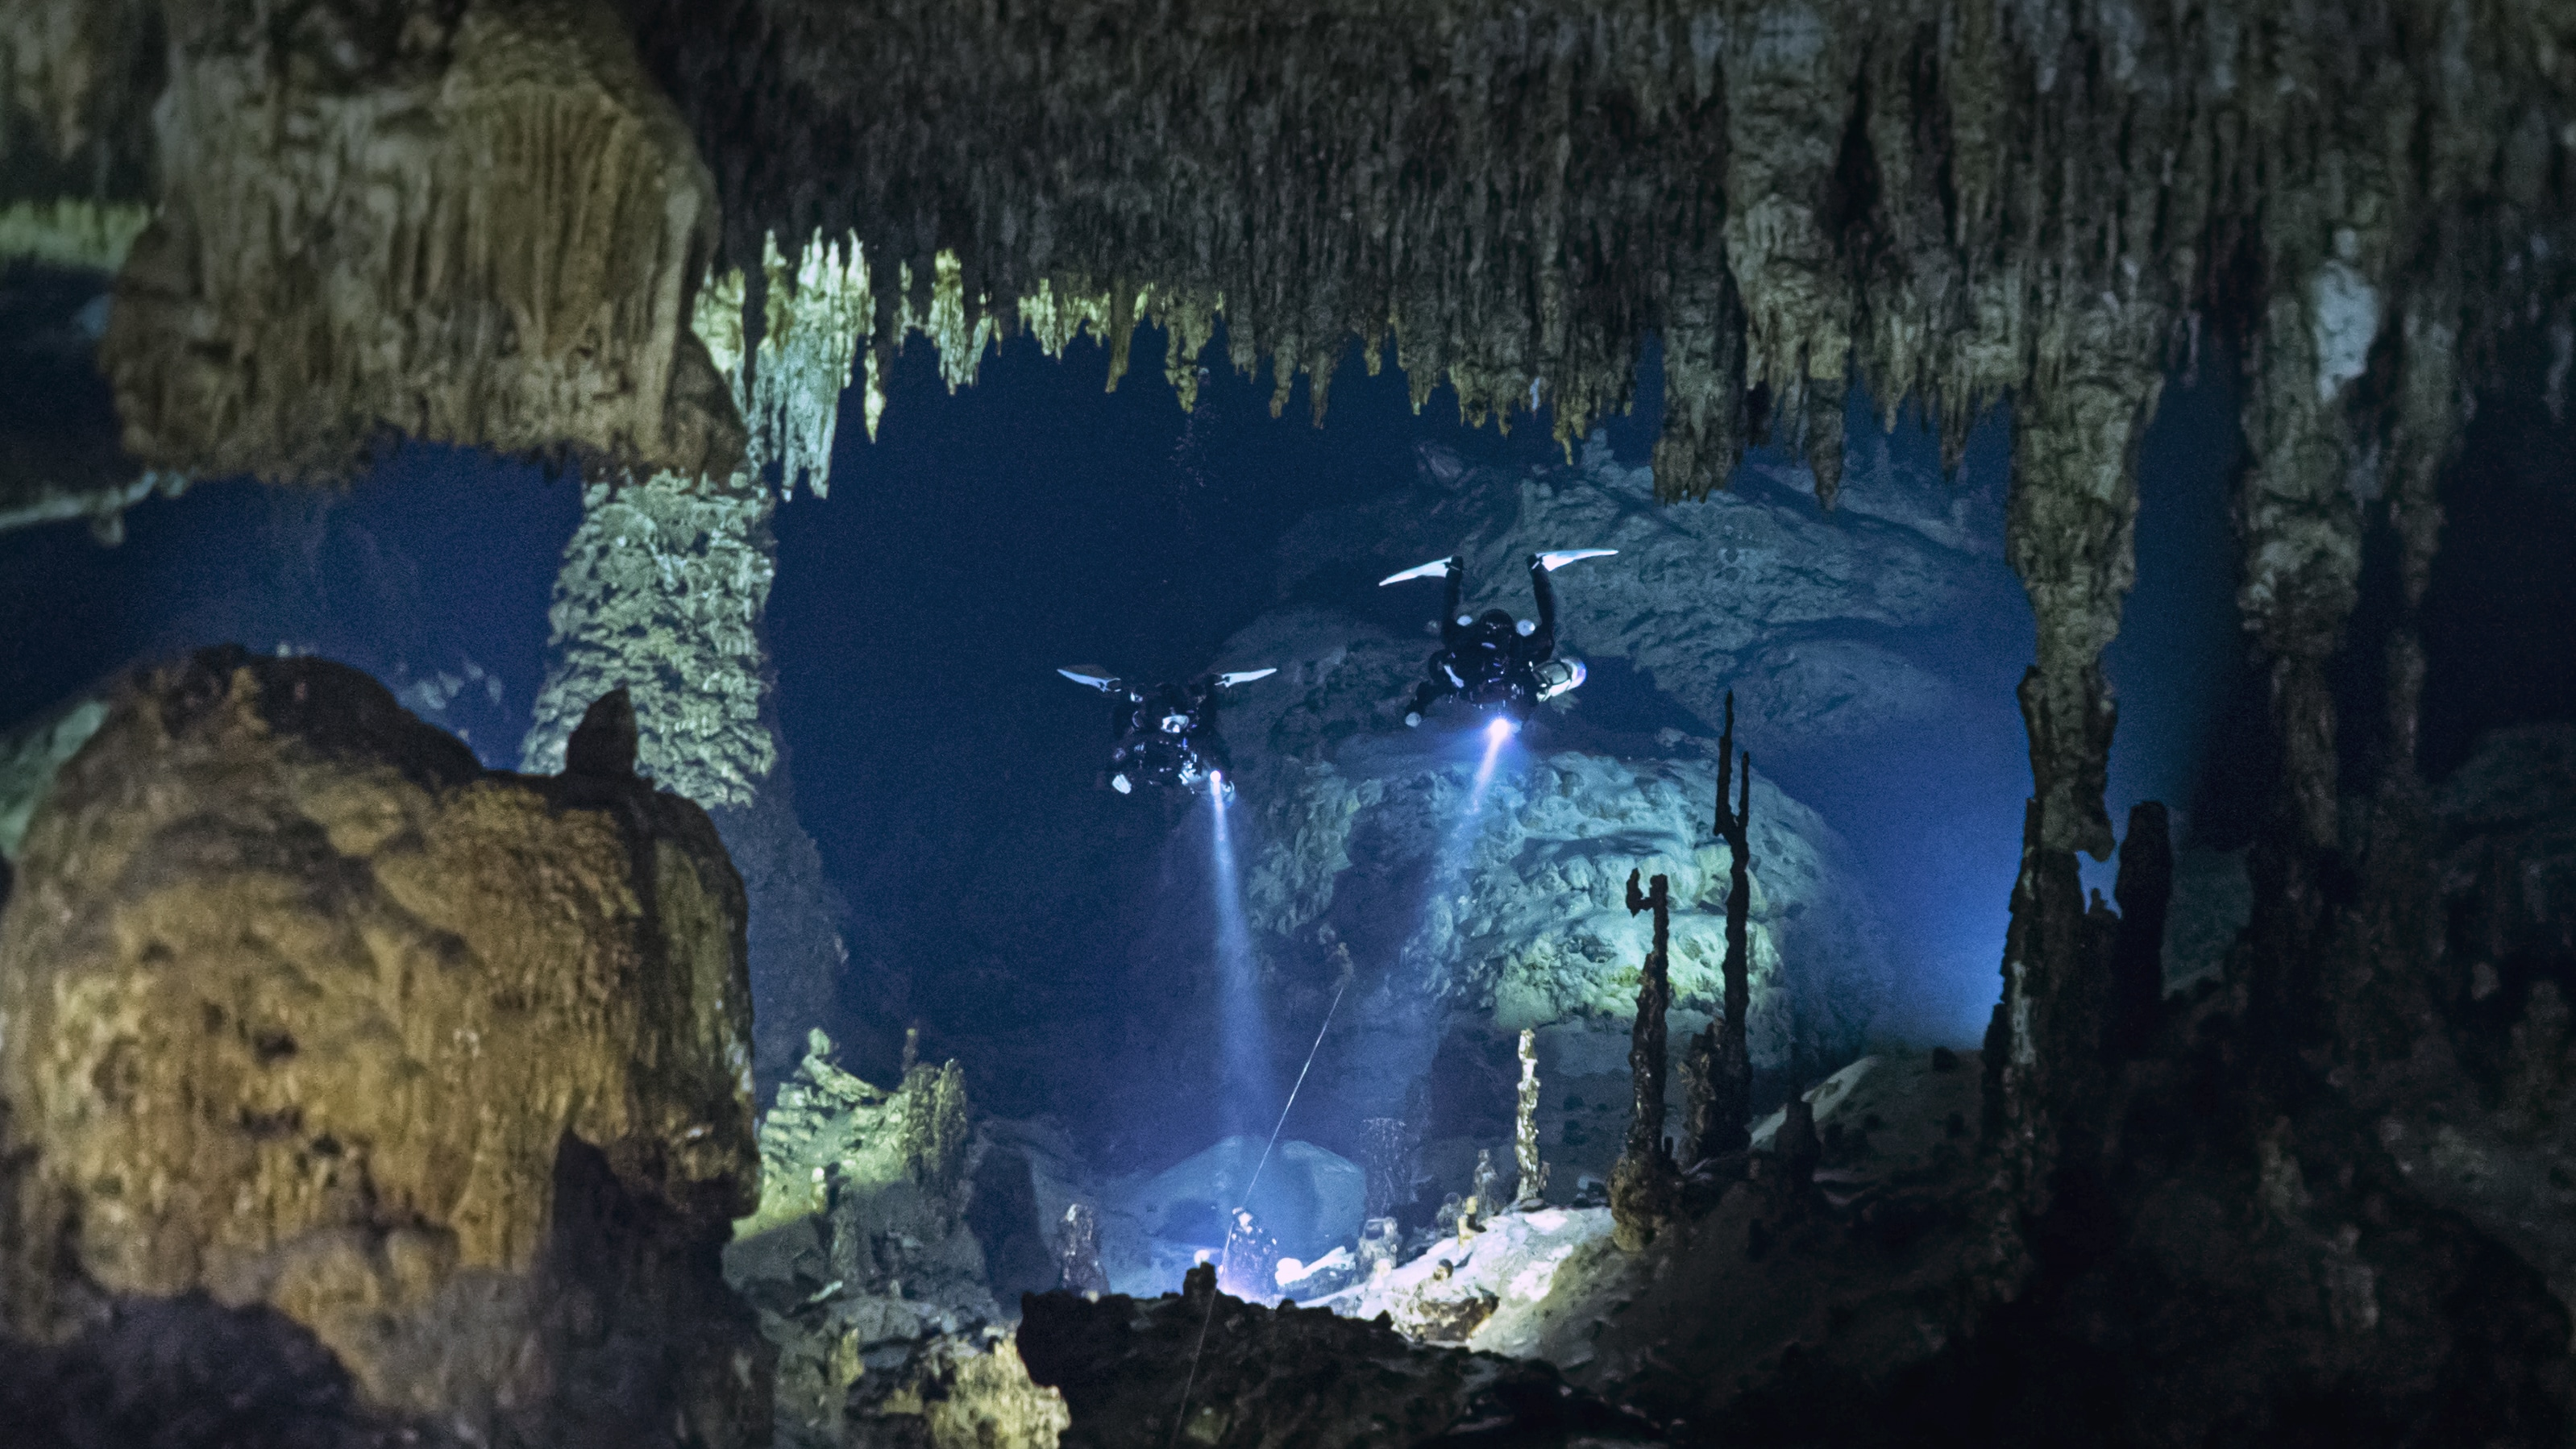 New Film Featuring Female Cave Divers Released